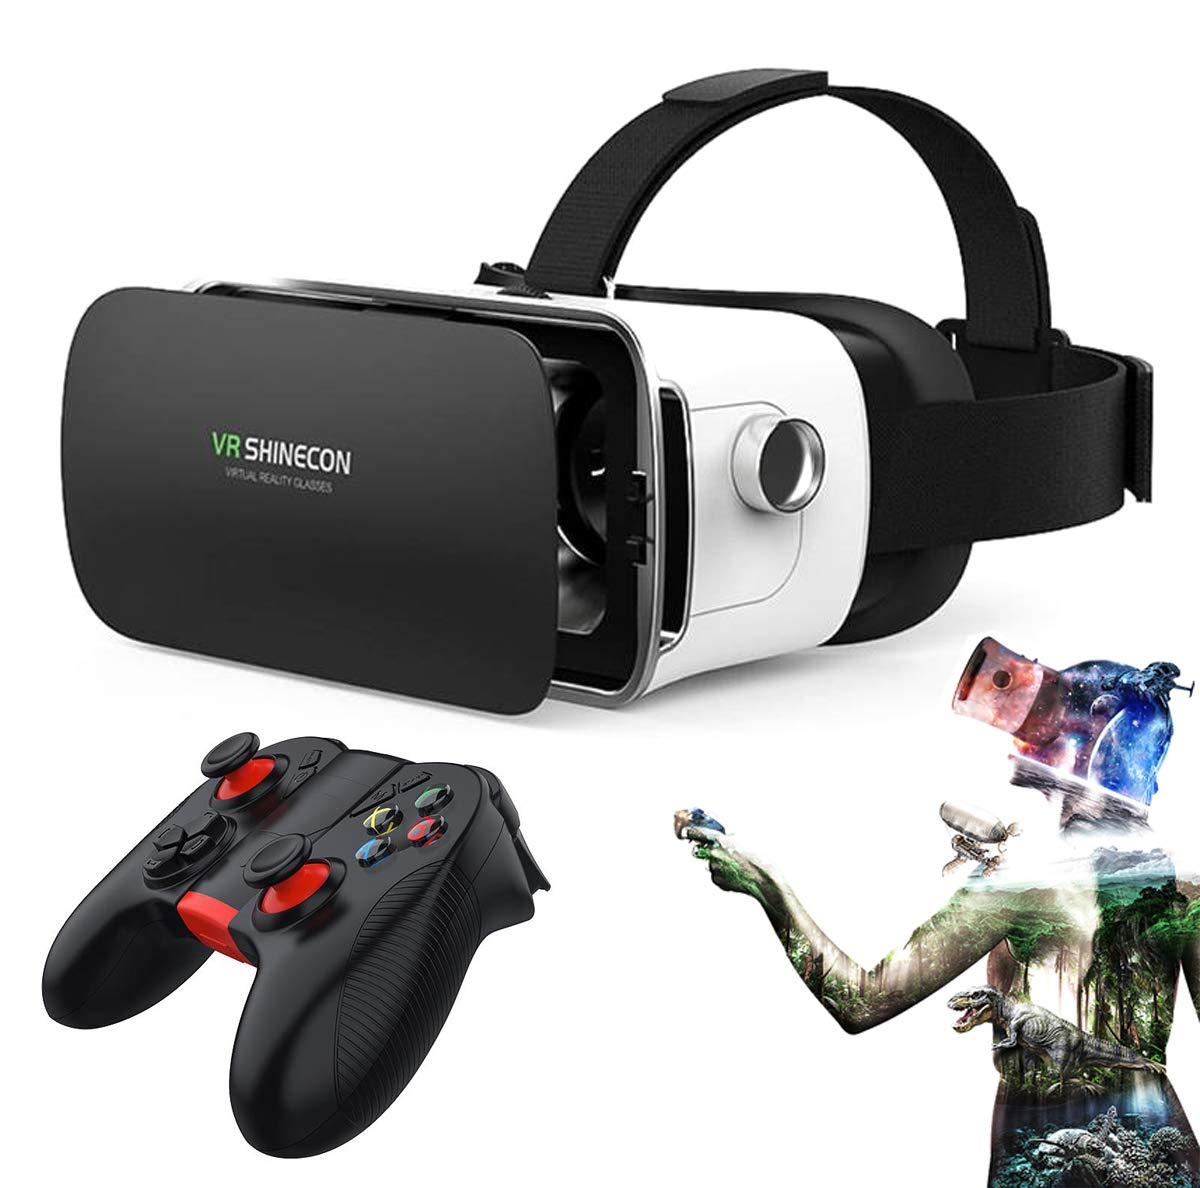 VR Virtual Reality Headset with Remote Controller, 3D VR Goggles Glasses Helmet for Home 3D Movies and Games Compatible with 4.0-6.3 Inches iOS Android Smartphone: Amazon.es: Electrónica